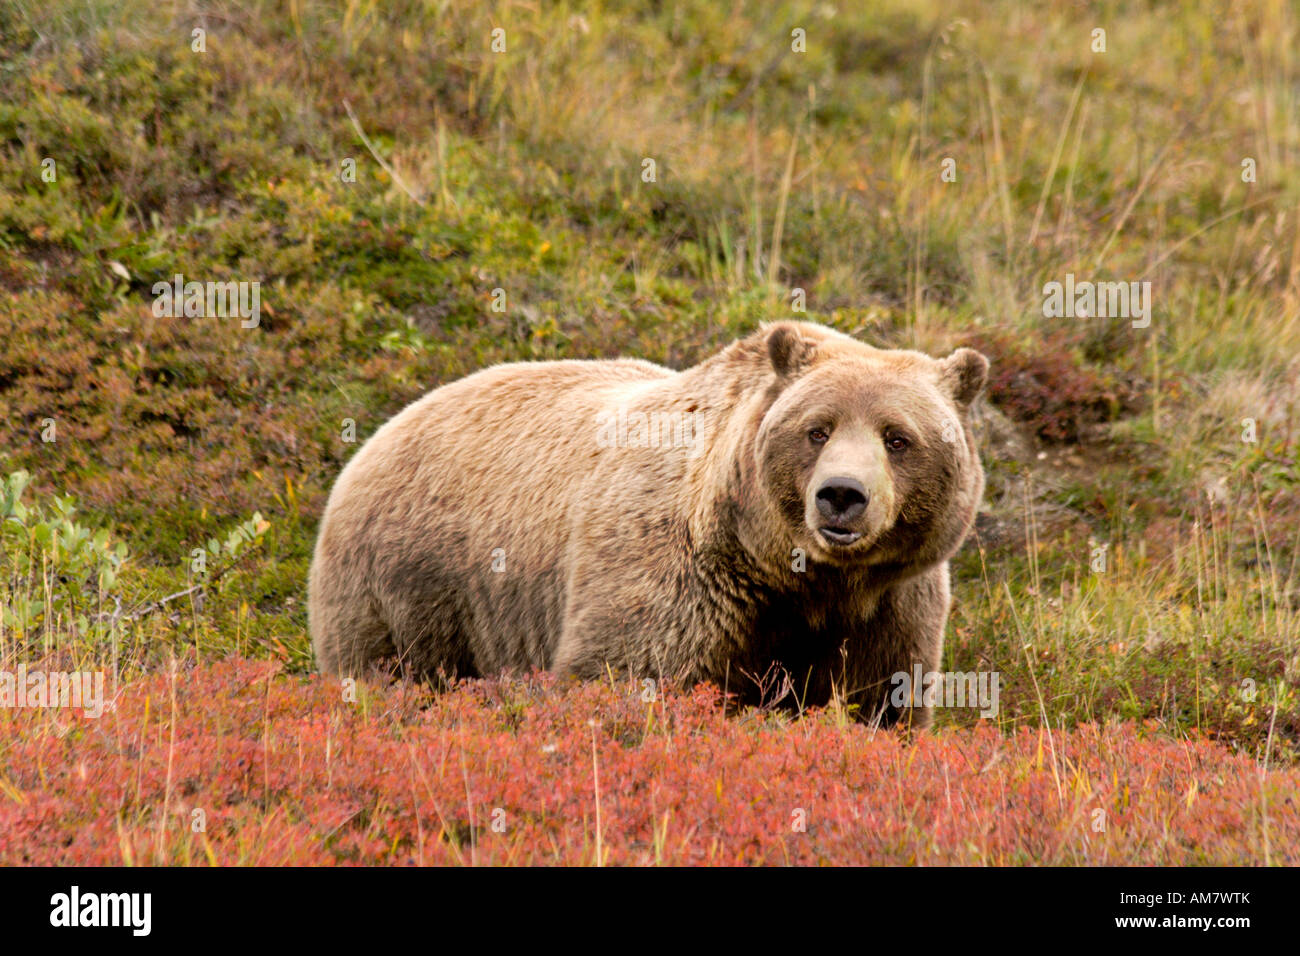 Grizzly bear, Ursus arctos horribilis, male, Alaska, USA - Stock Image